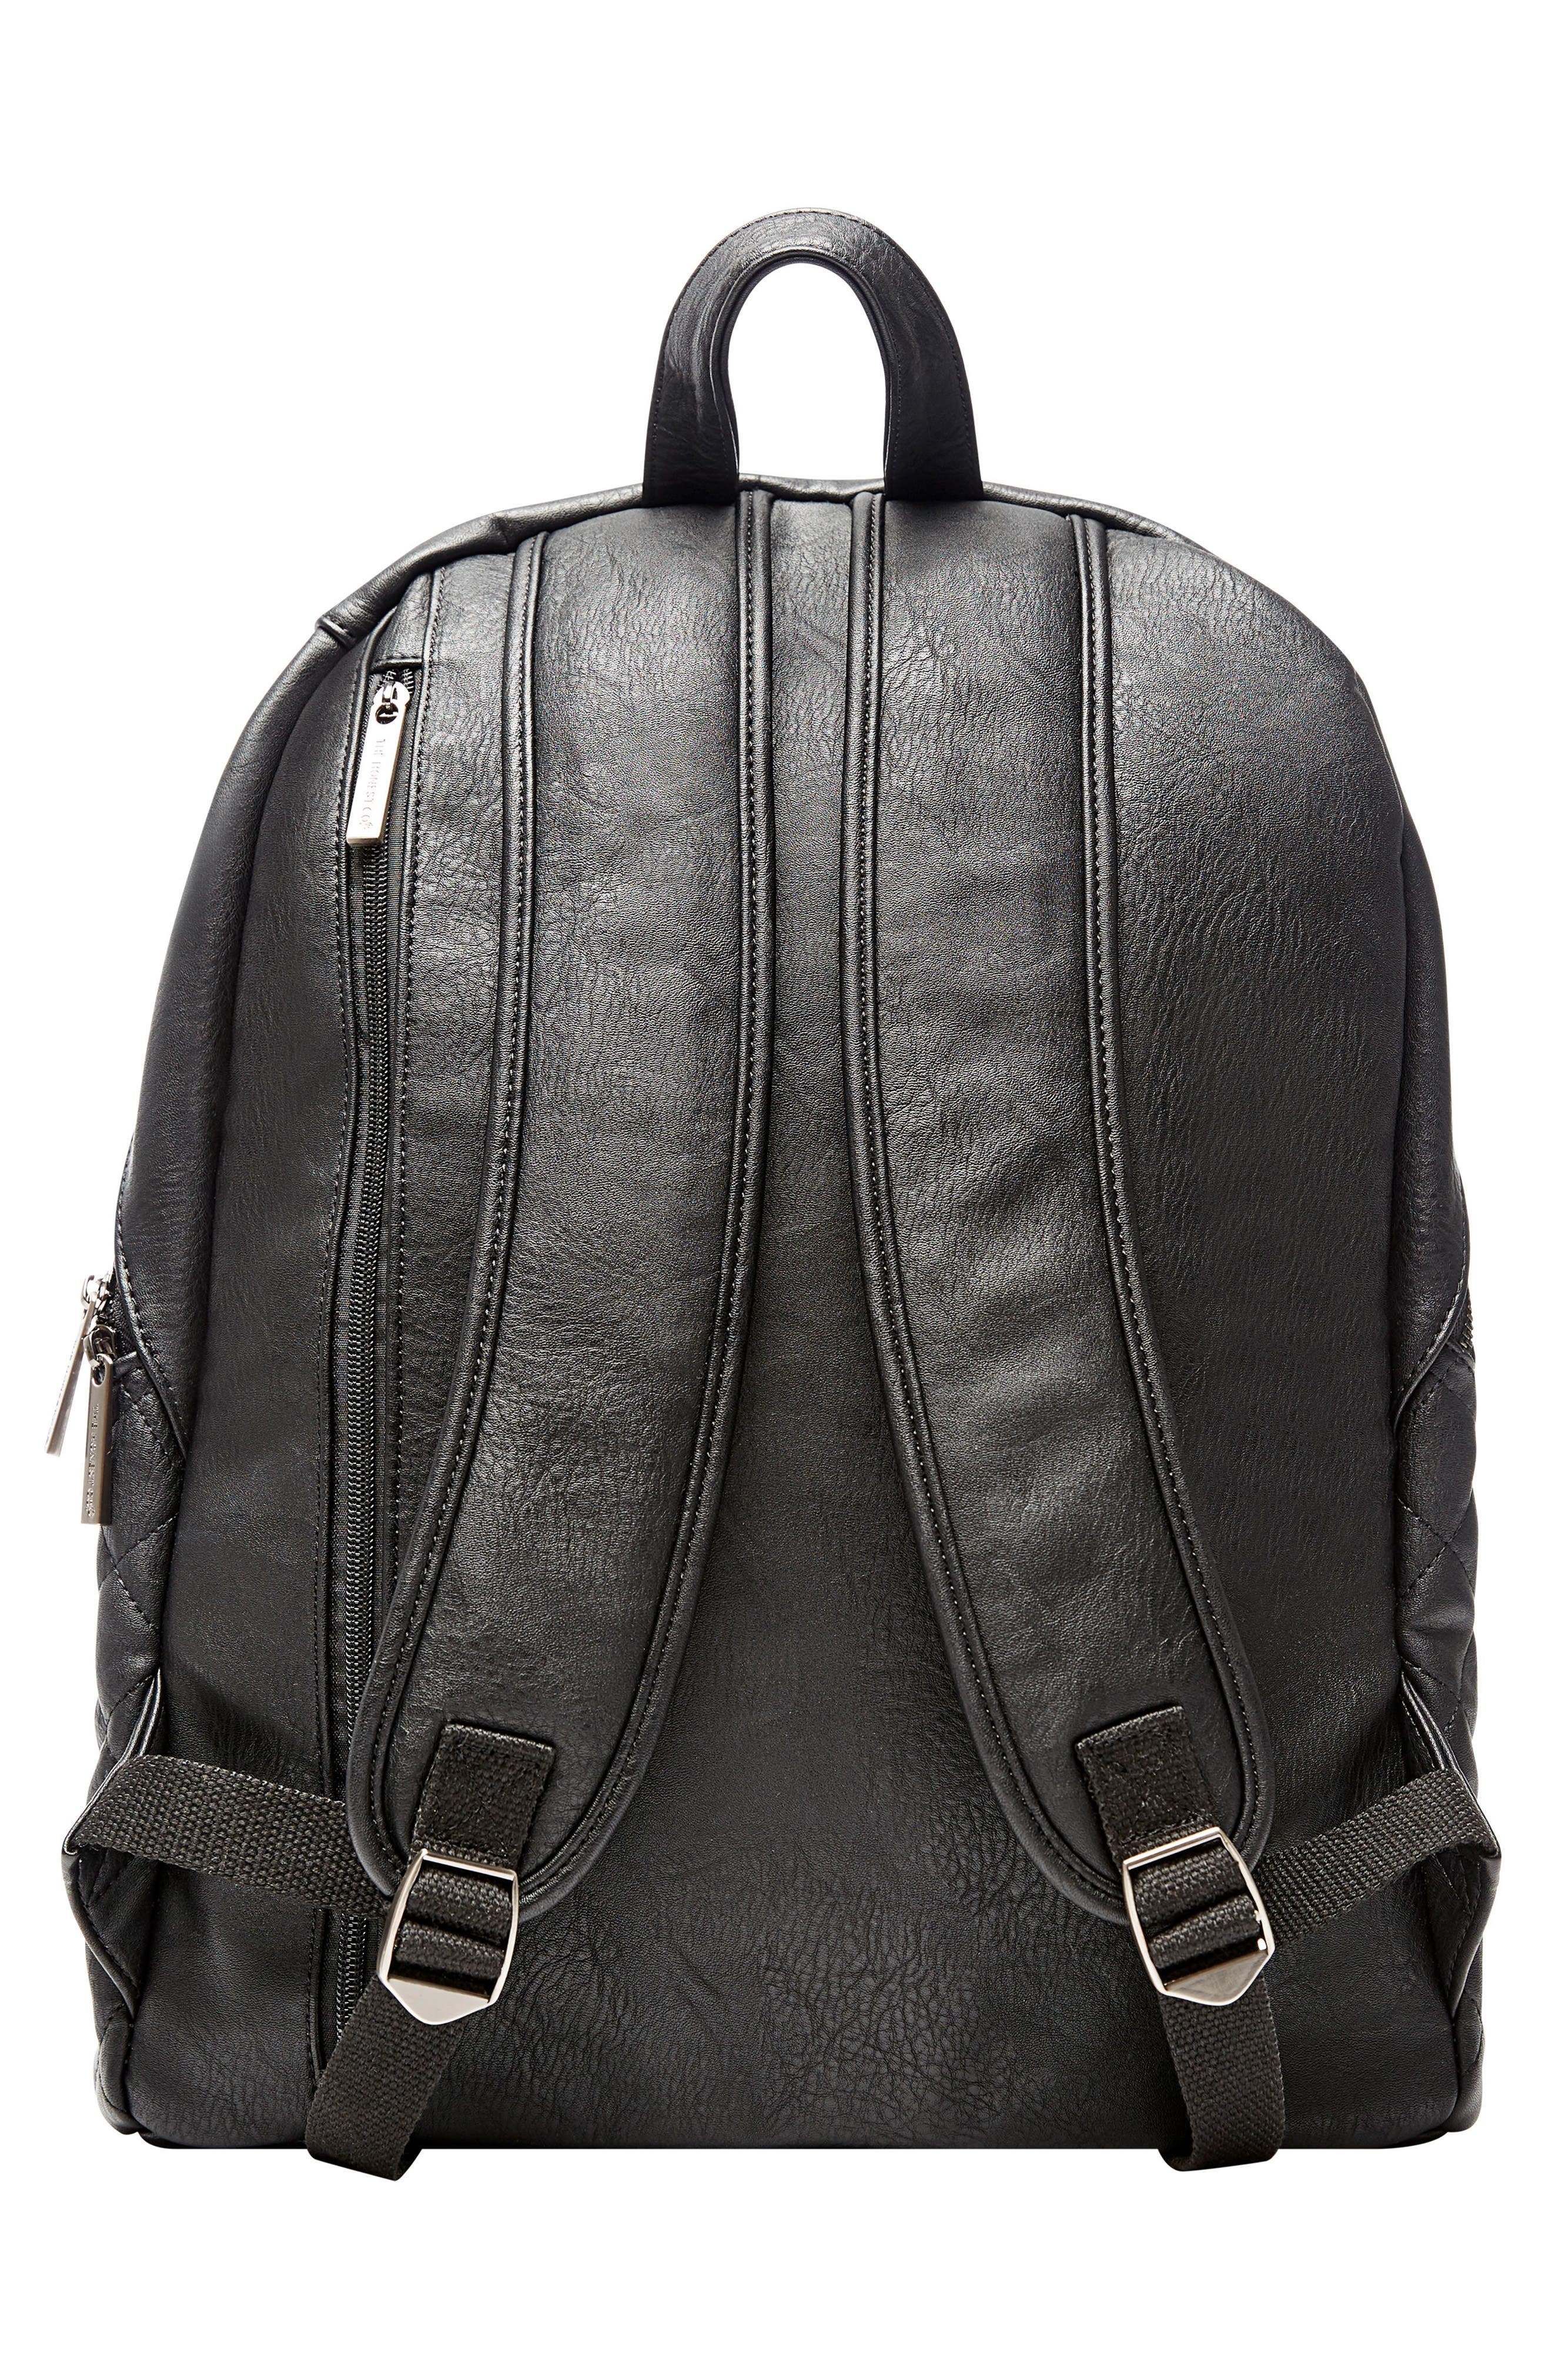 City Quilted Faux Leather Diaper Backpack,                             Alternate thumbnail 3, color,                             001